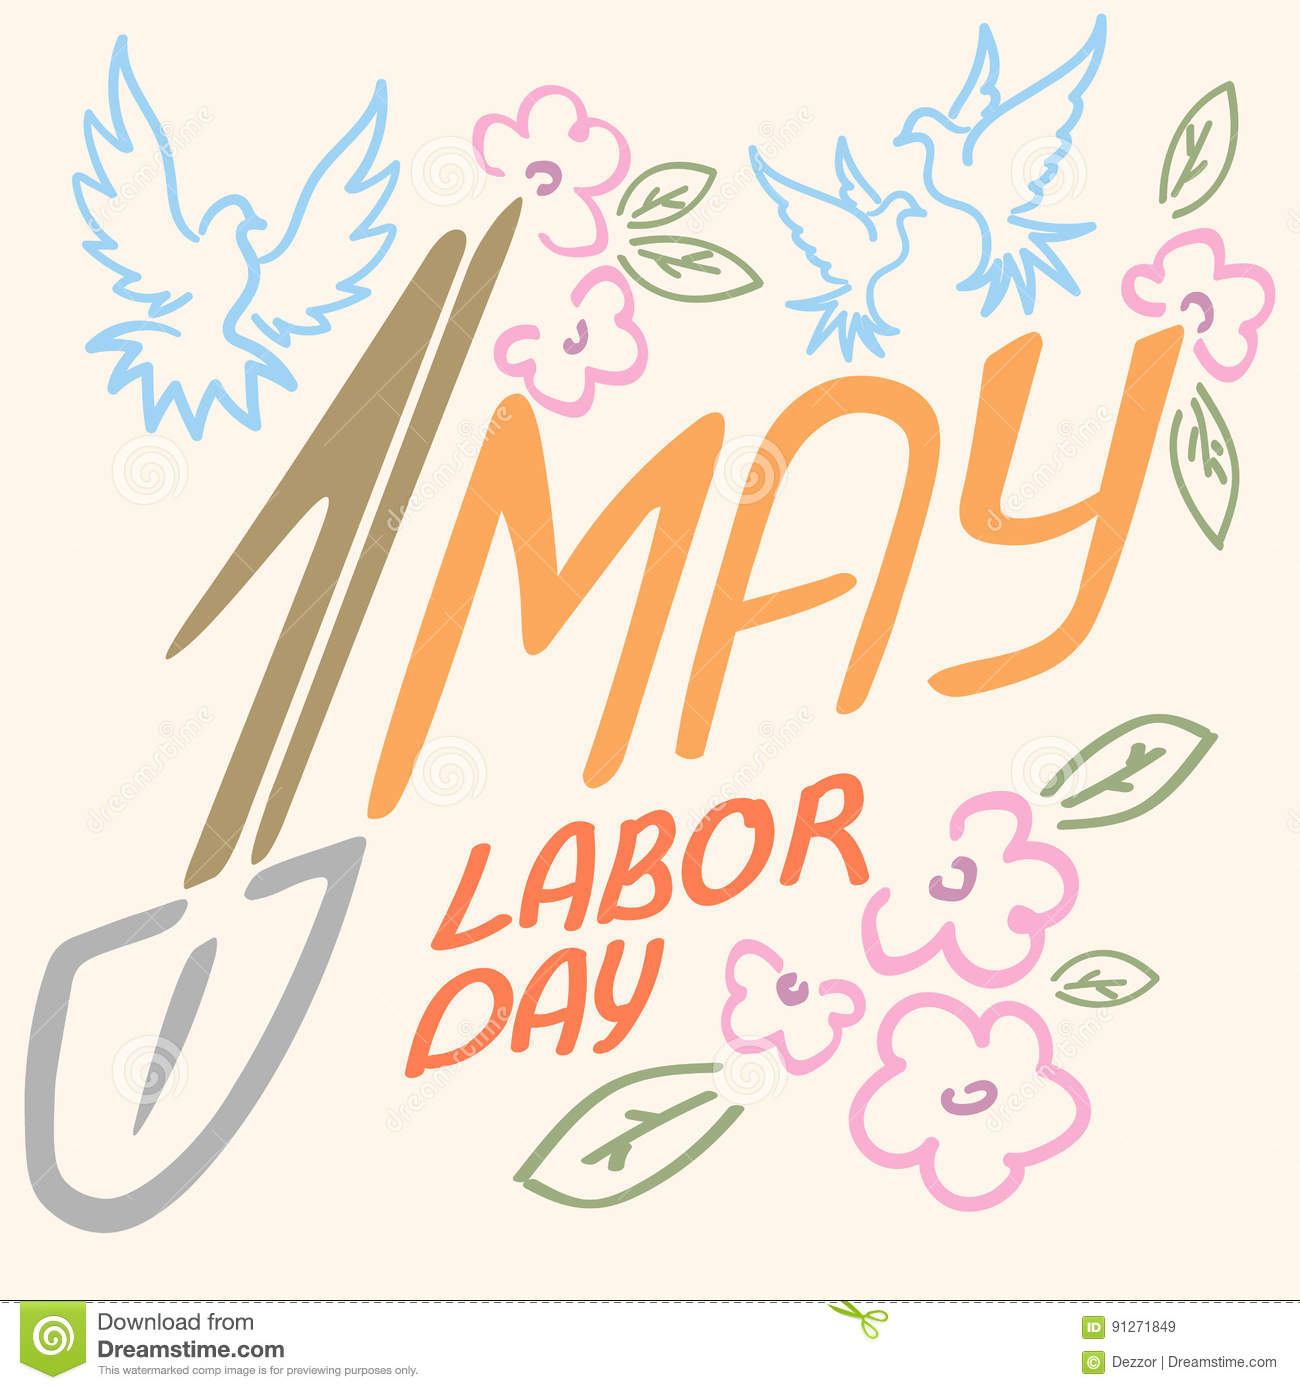 May 1 labor day logo symbol of pigeon spring flowers spade holiday may 1 labor day logo symbol of pigeon spring flowers spade holiday weekend buycottarizona Choice Image